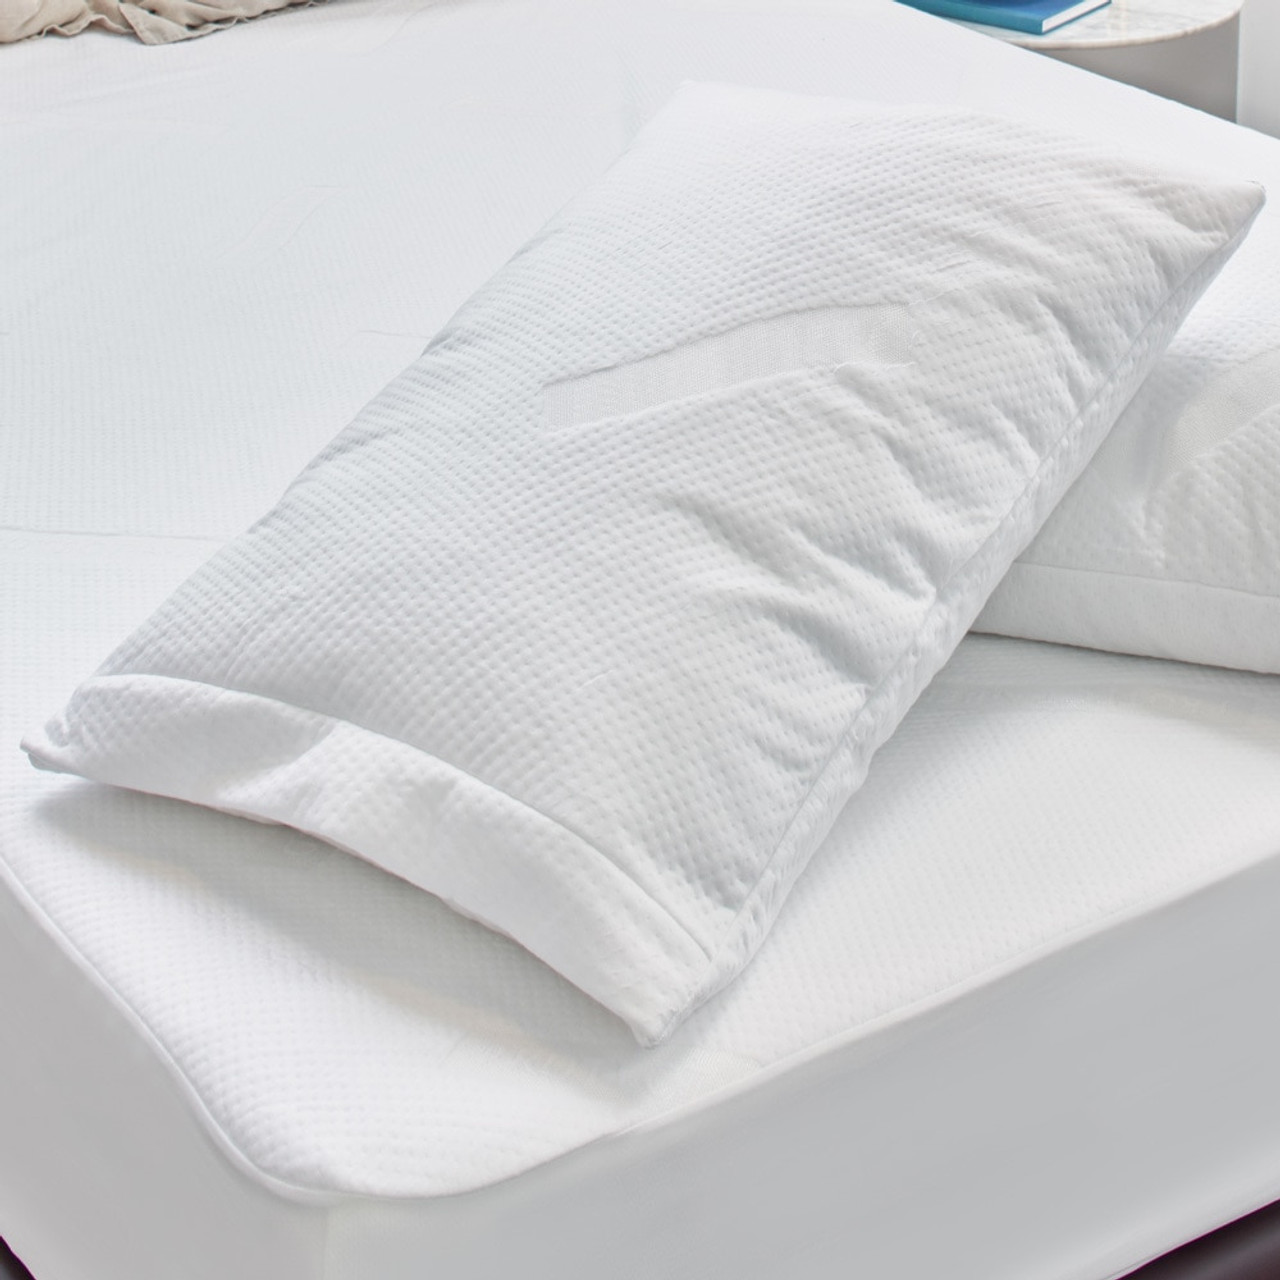 Buy Signature Series Tencel Waterproof Pillow Protector By Protect A Bed